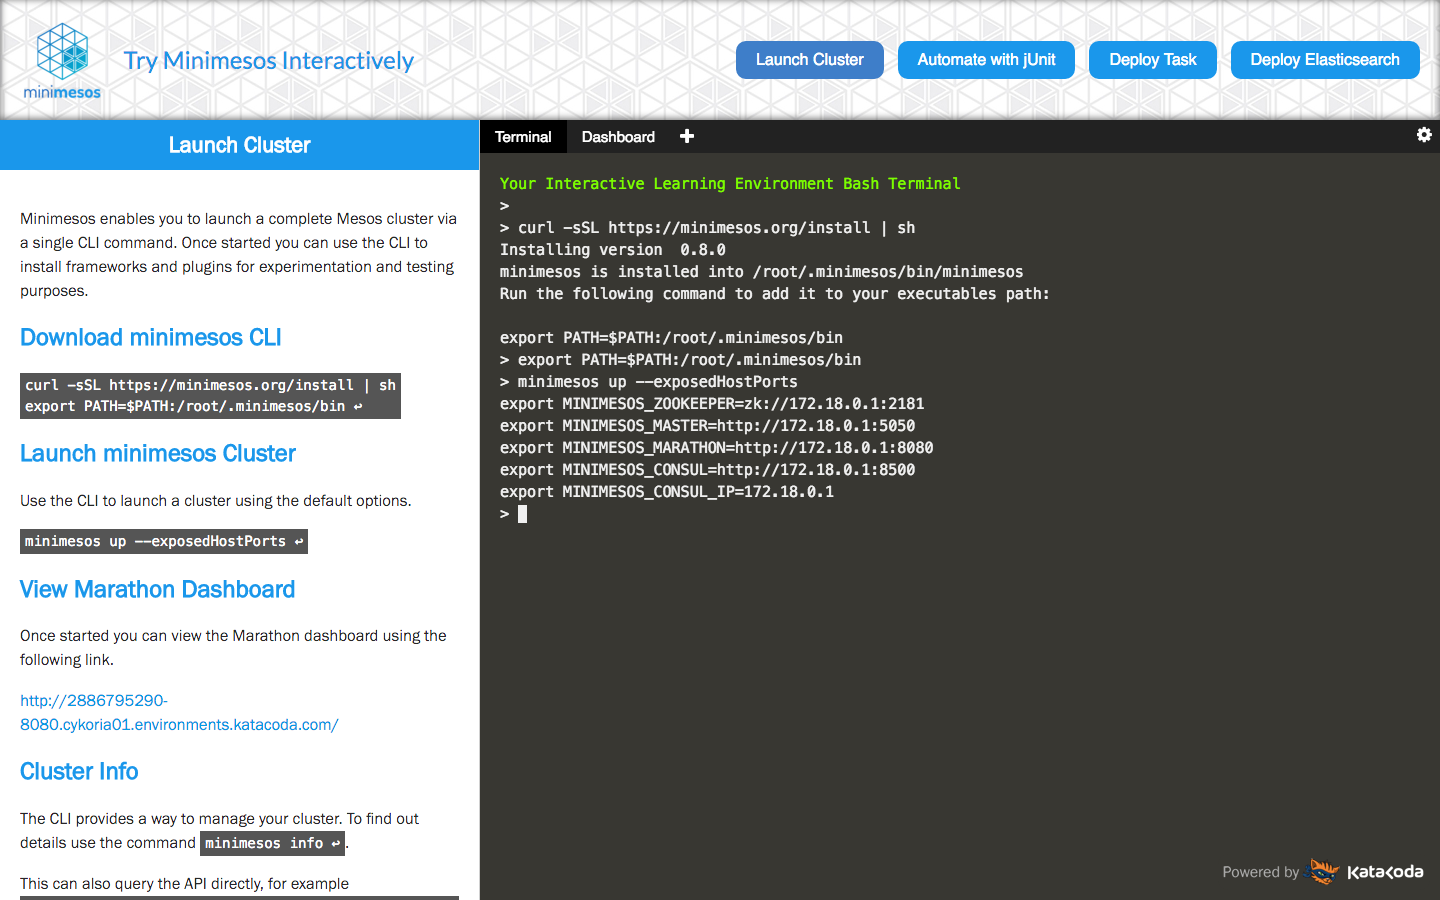 Creating an interactive learning environment for minimesos